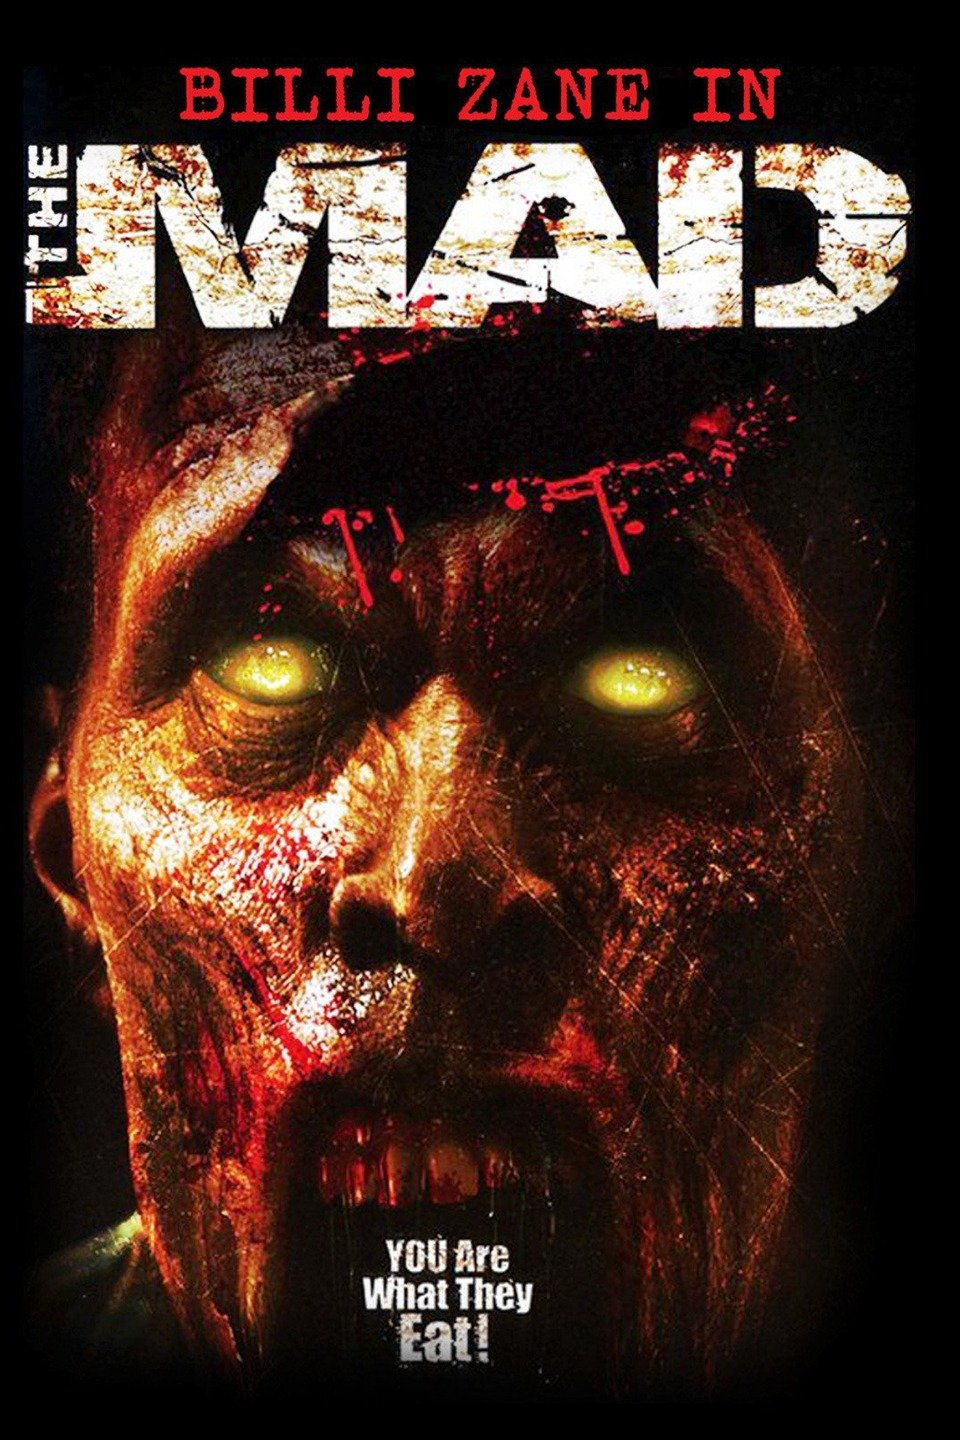 The Mad movie poster with a pupil-less, yellow-eyed zombie covered in blood.